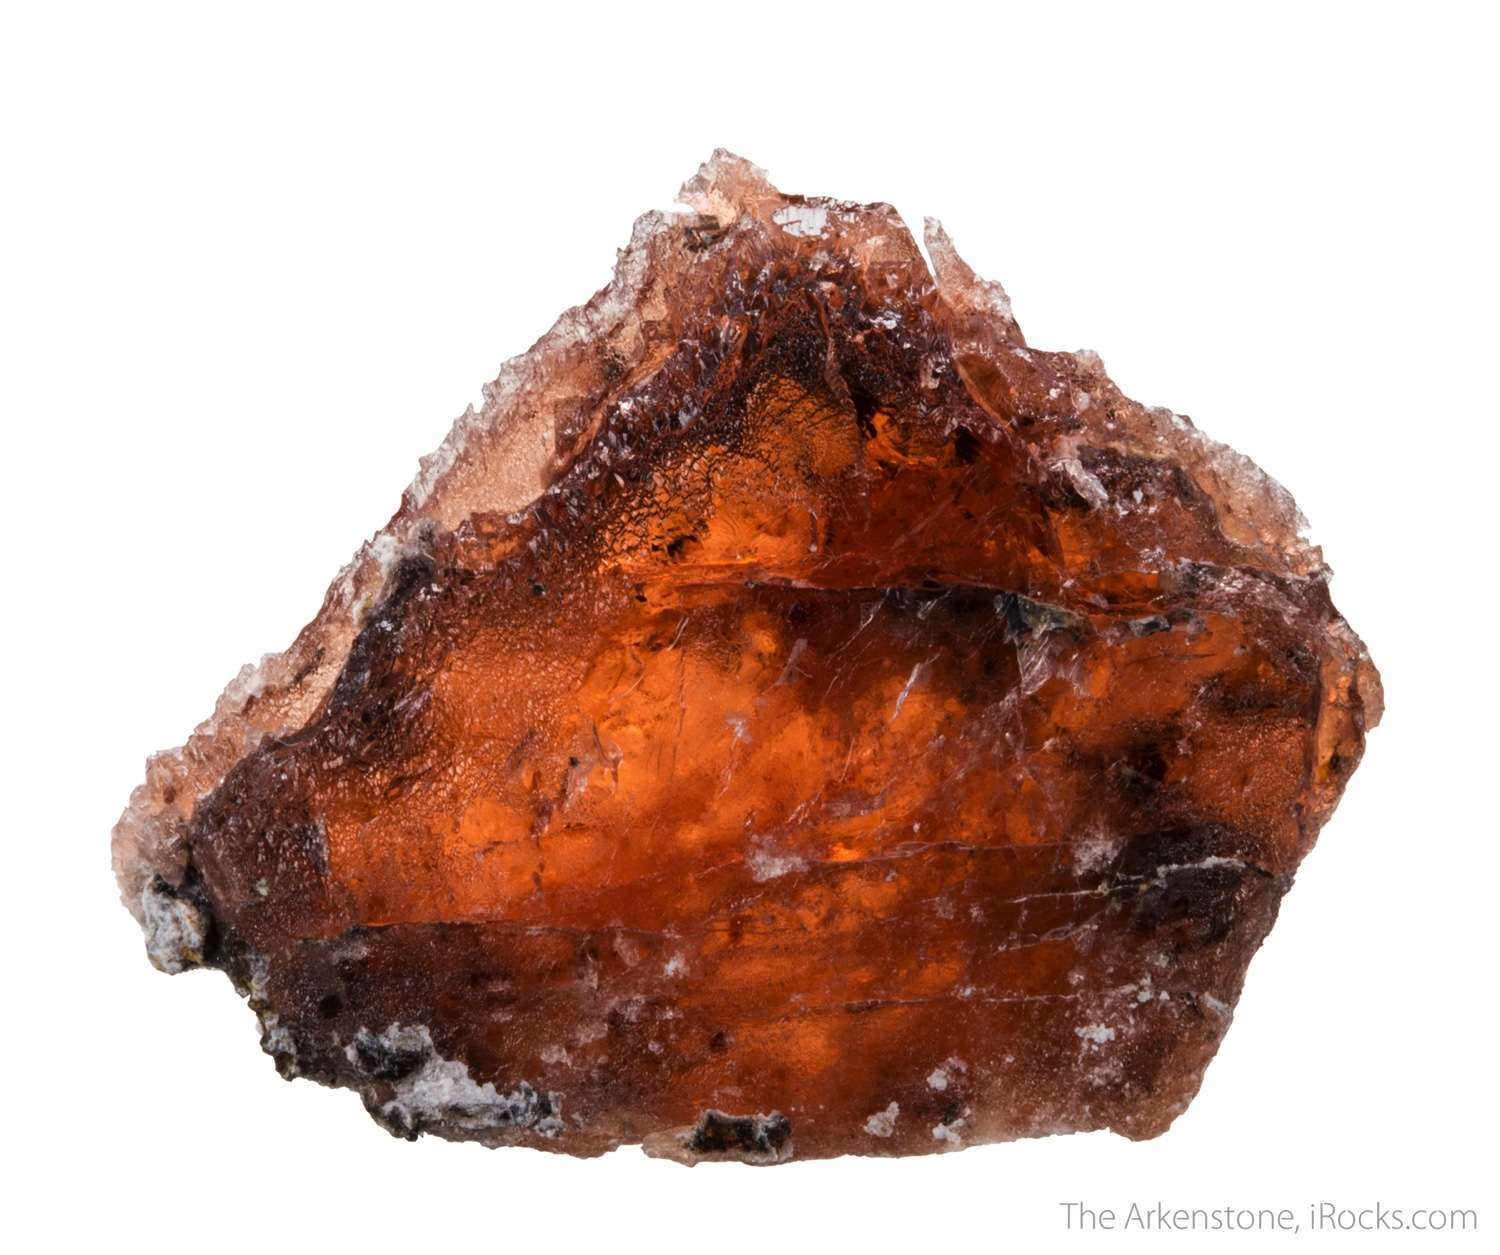 A single large triplite crystal shows like red windowpane fully